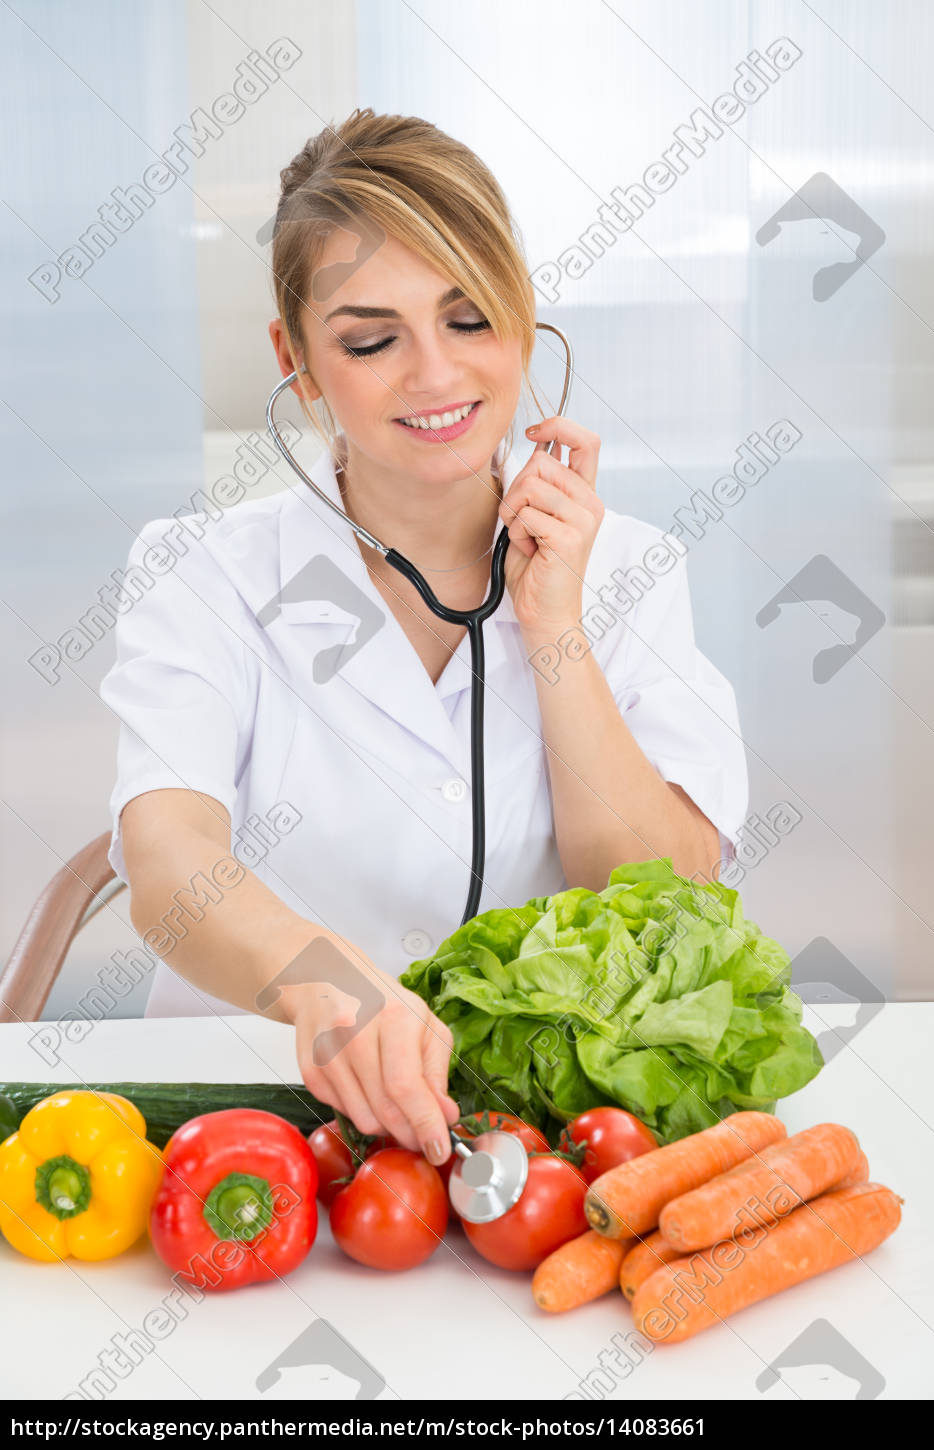 female, dietician, examining, vegetables - 14083661